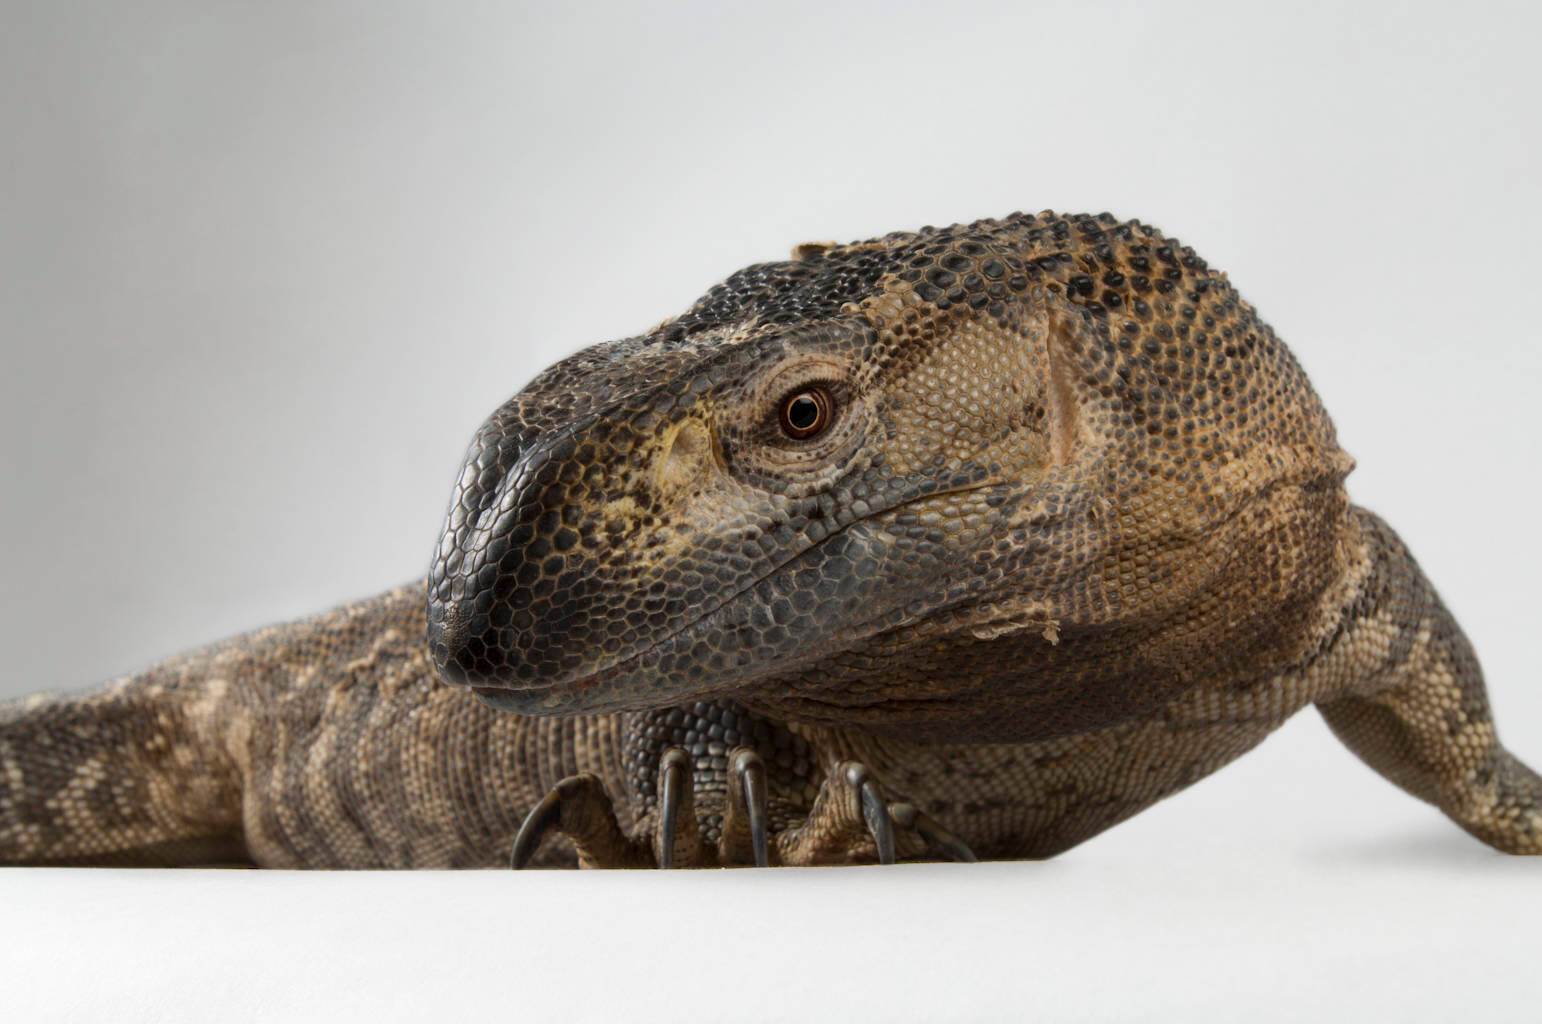 A black-throated monitor (Varanus albigularis ionidesi) at the Kansas City Zoo.